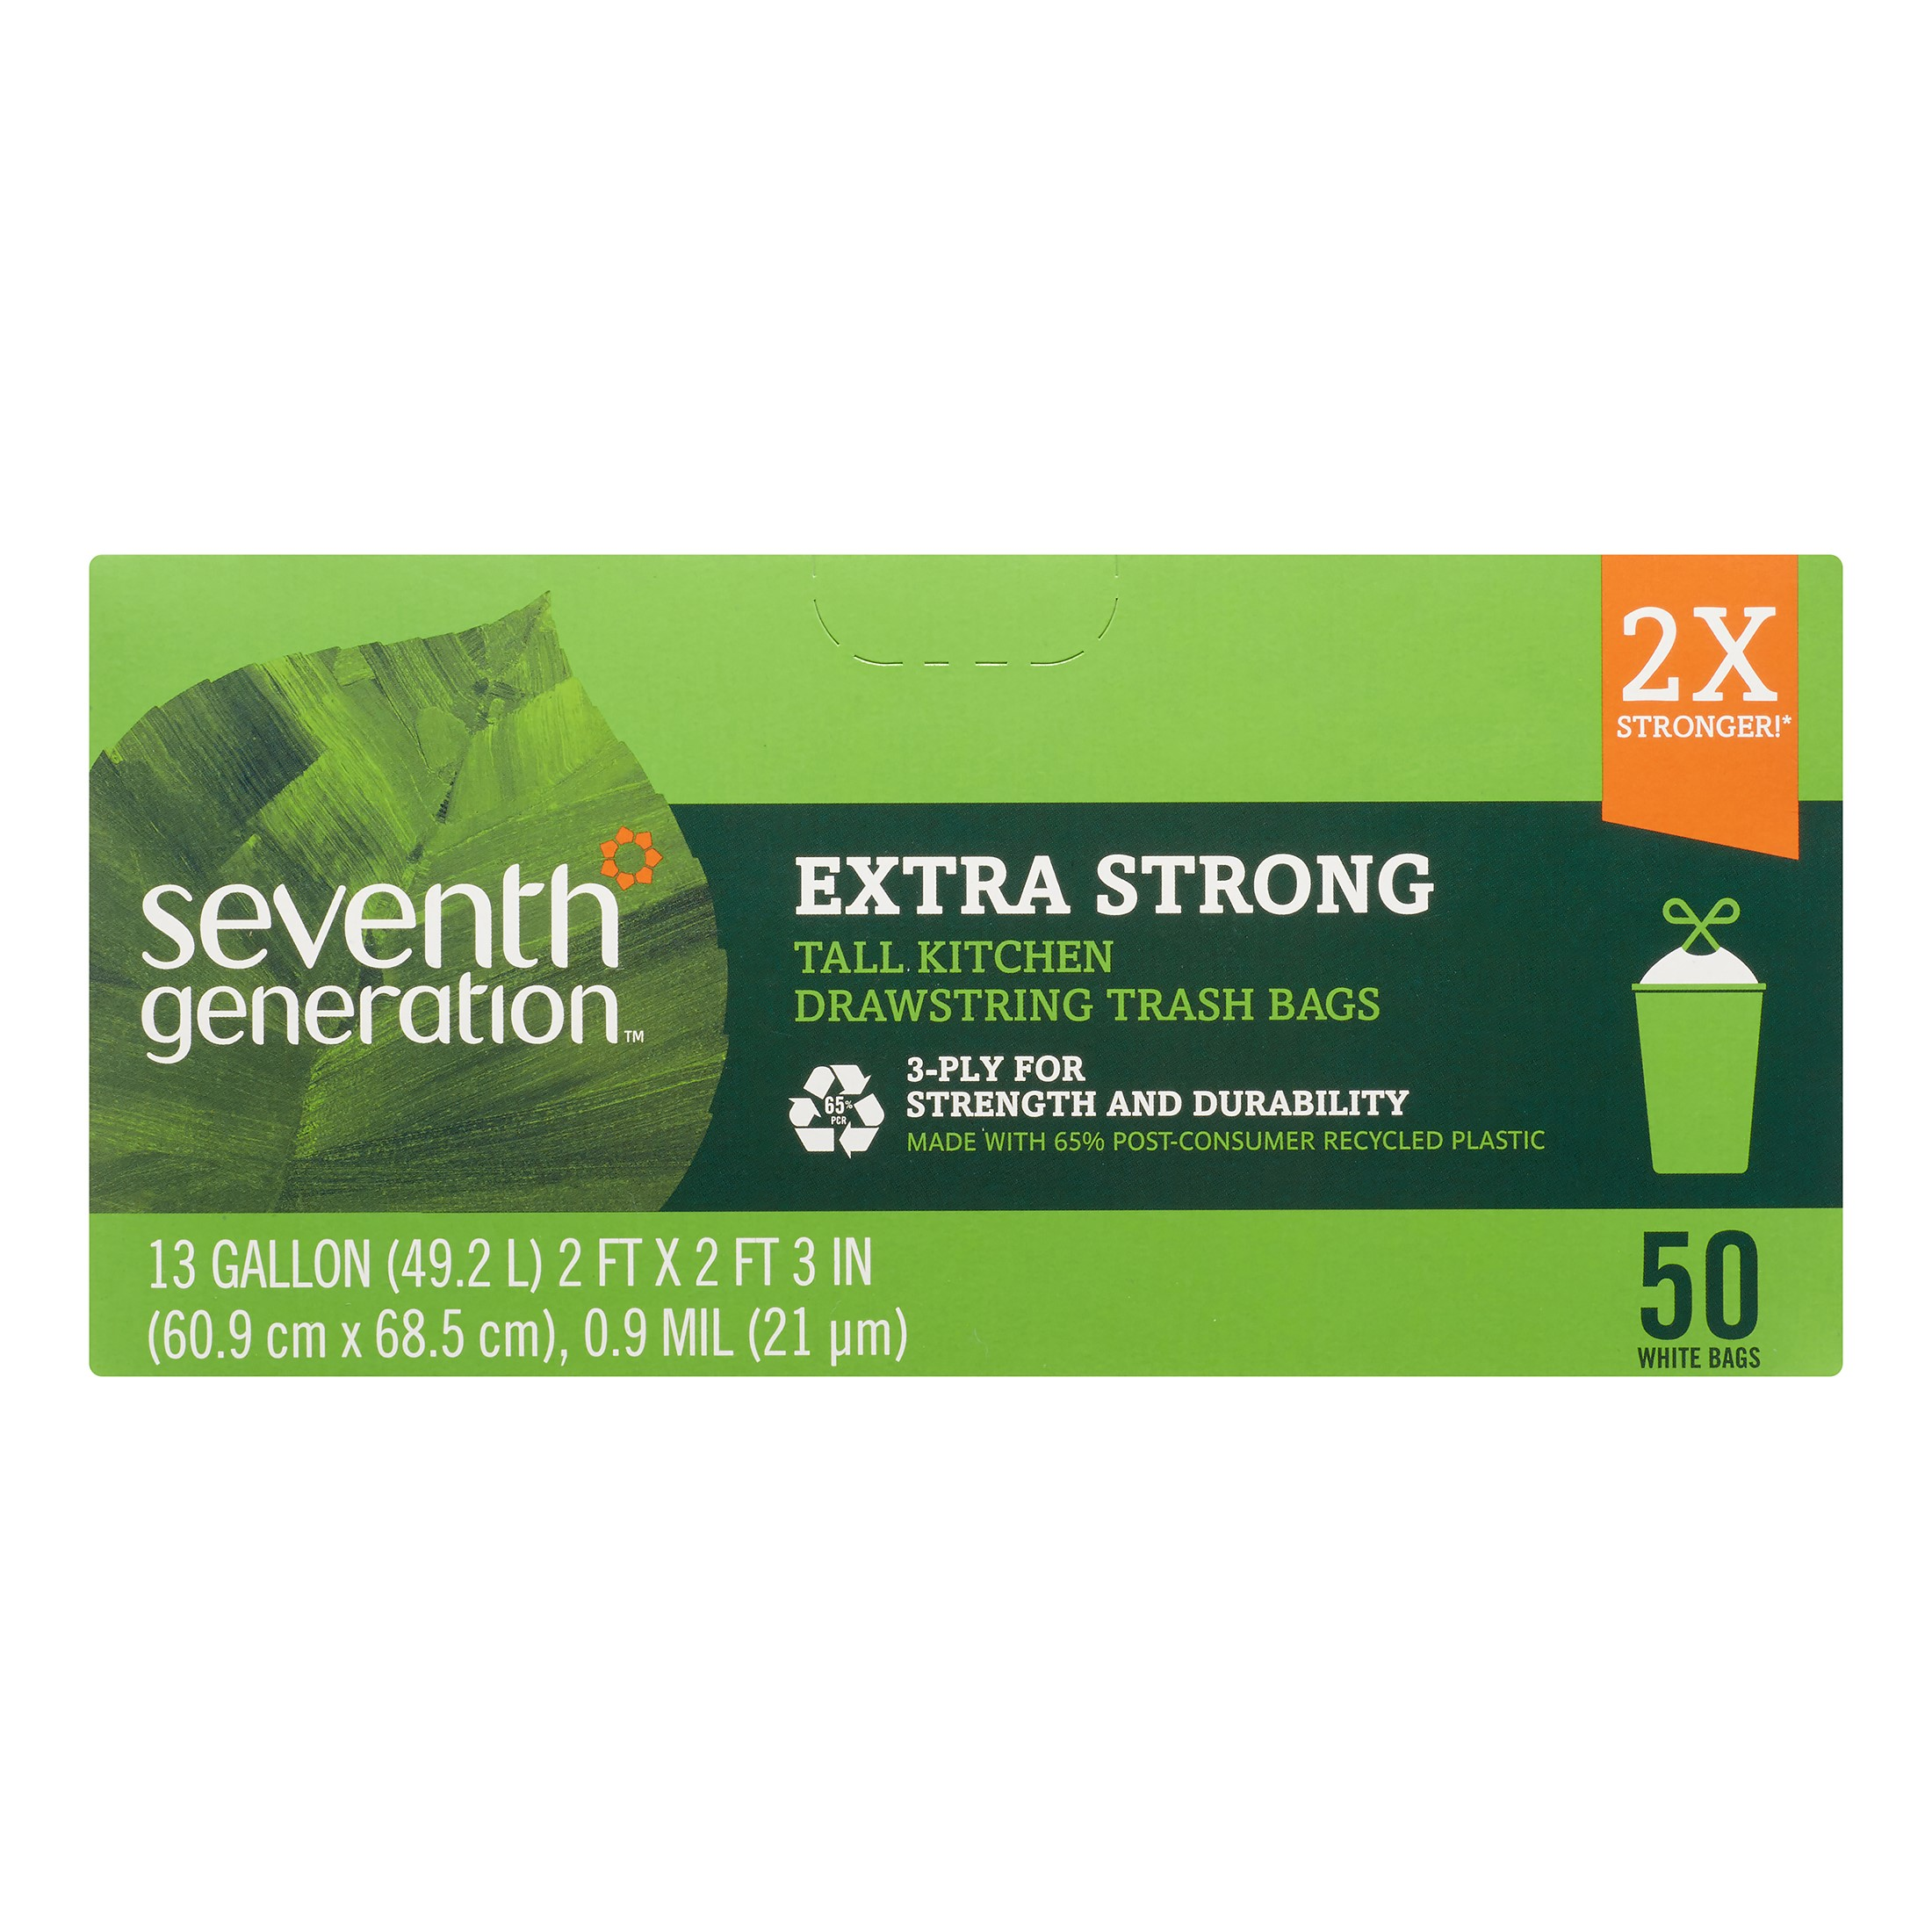 Seventh Generation Extra Strong Tall Kitchen Drawstring Trash Bags 13 Gallon 50 count